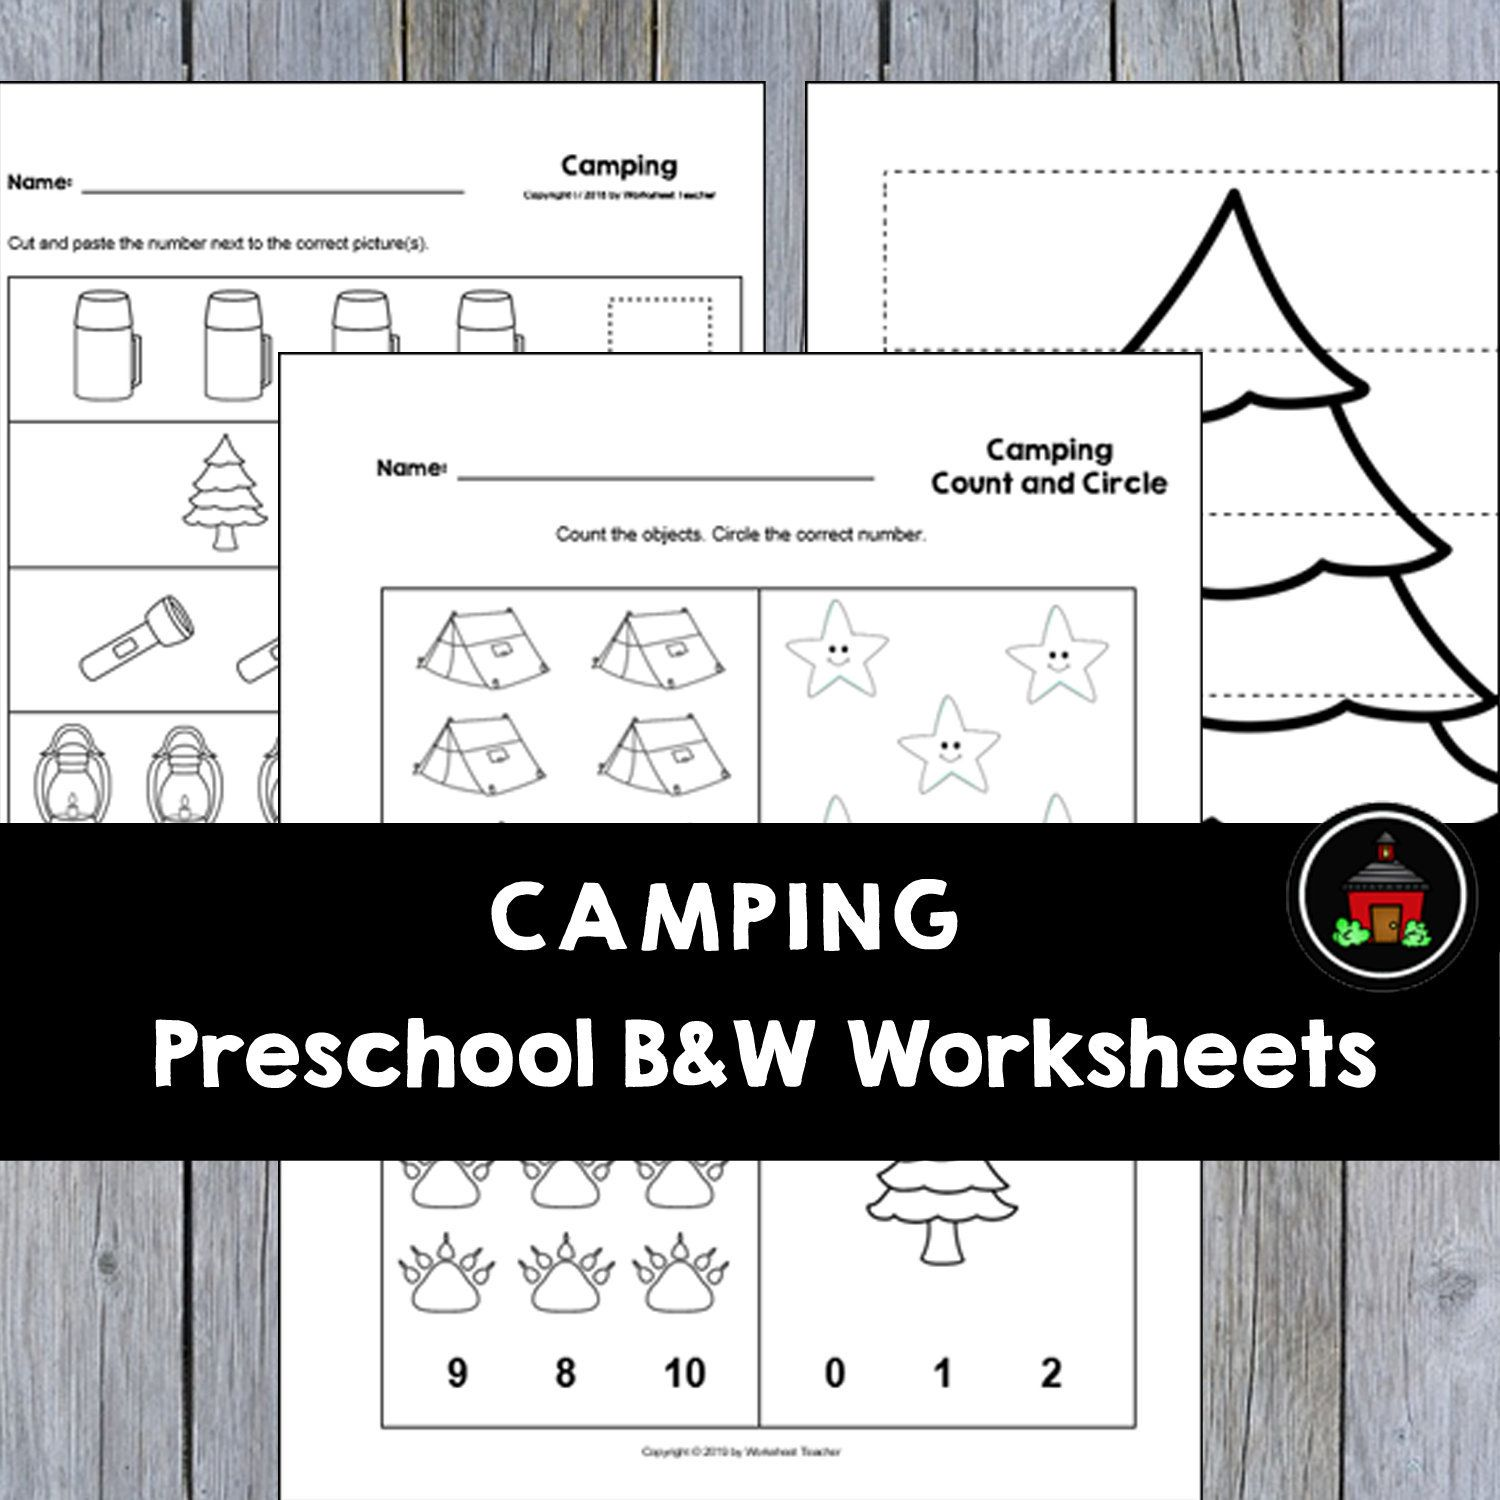 10 Camping Preschool Curriculum Activities